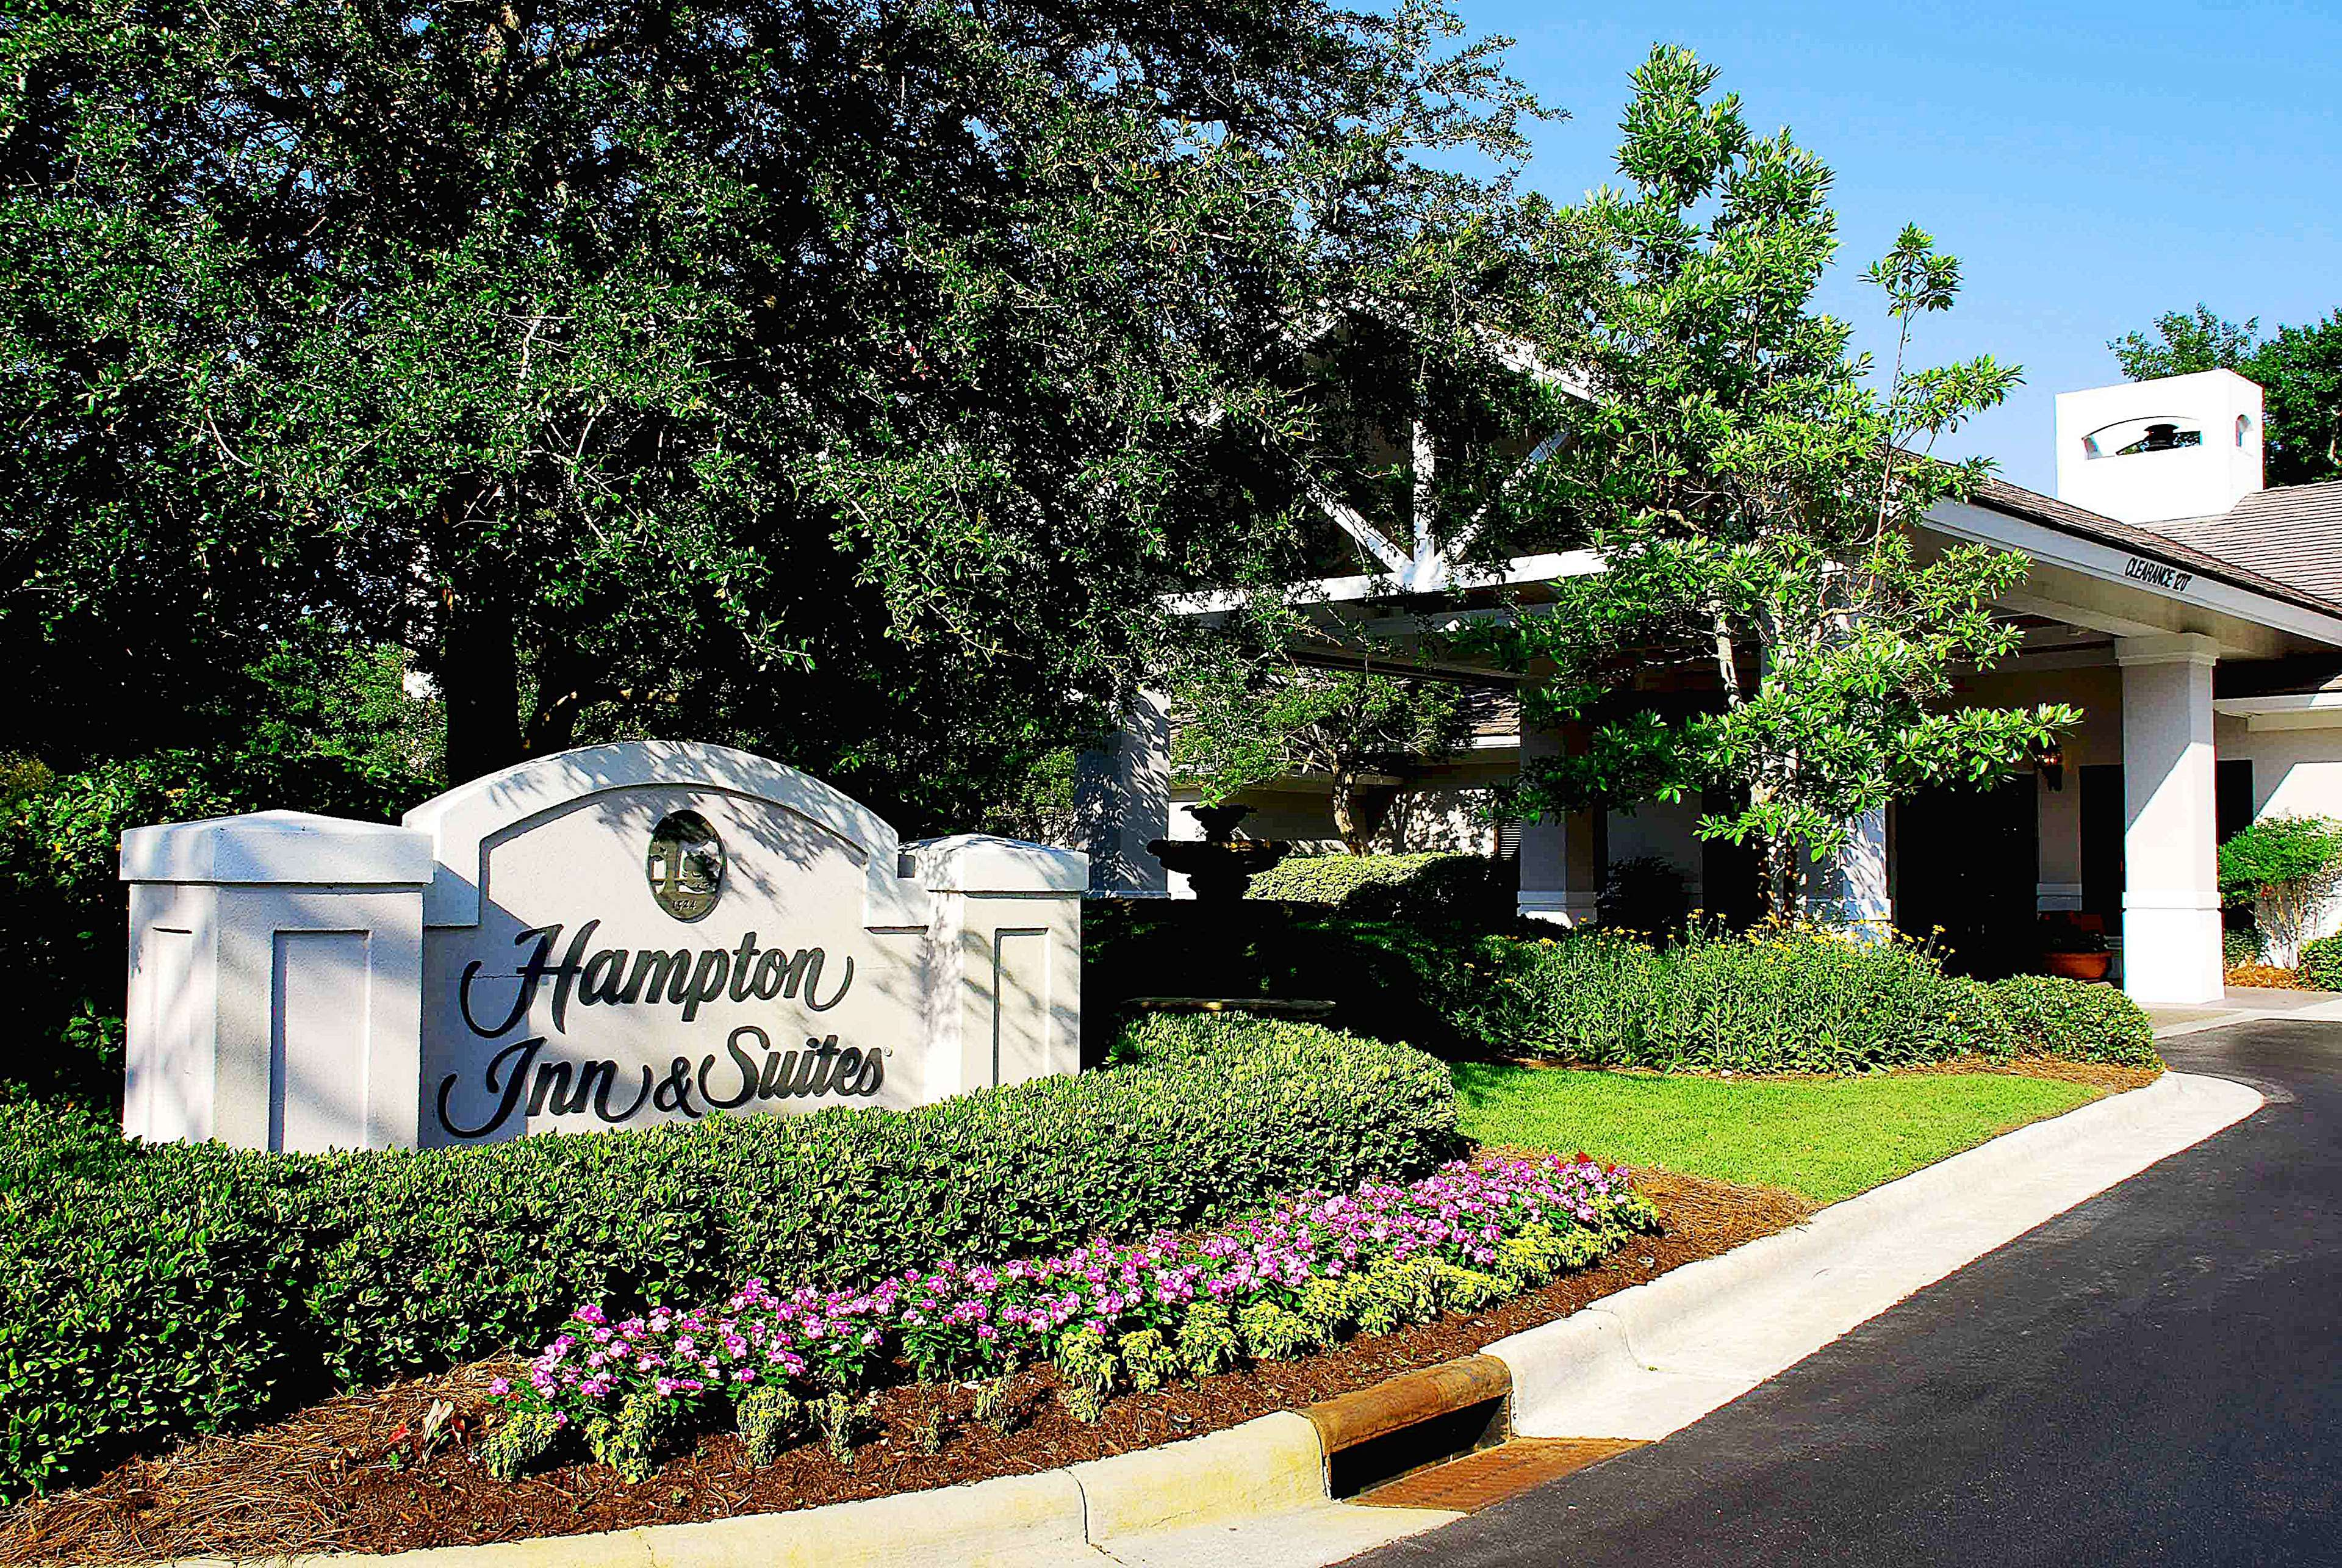 Hampton Inn & Suites Wilmington/Wrightsville Beach image 2